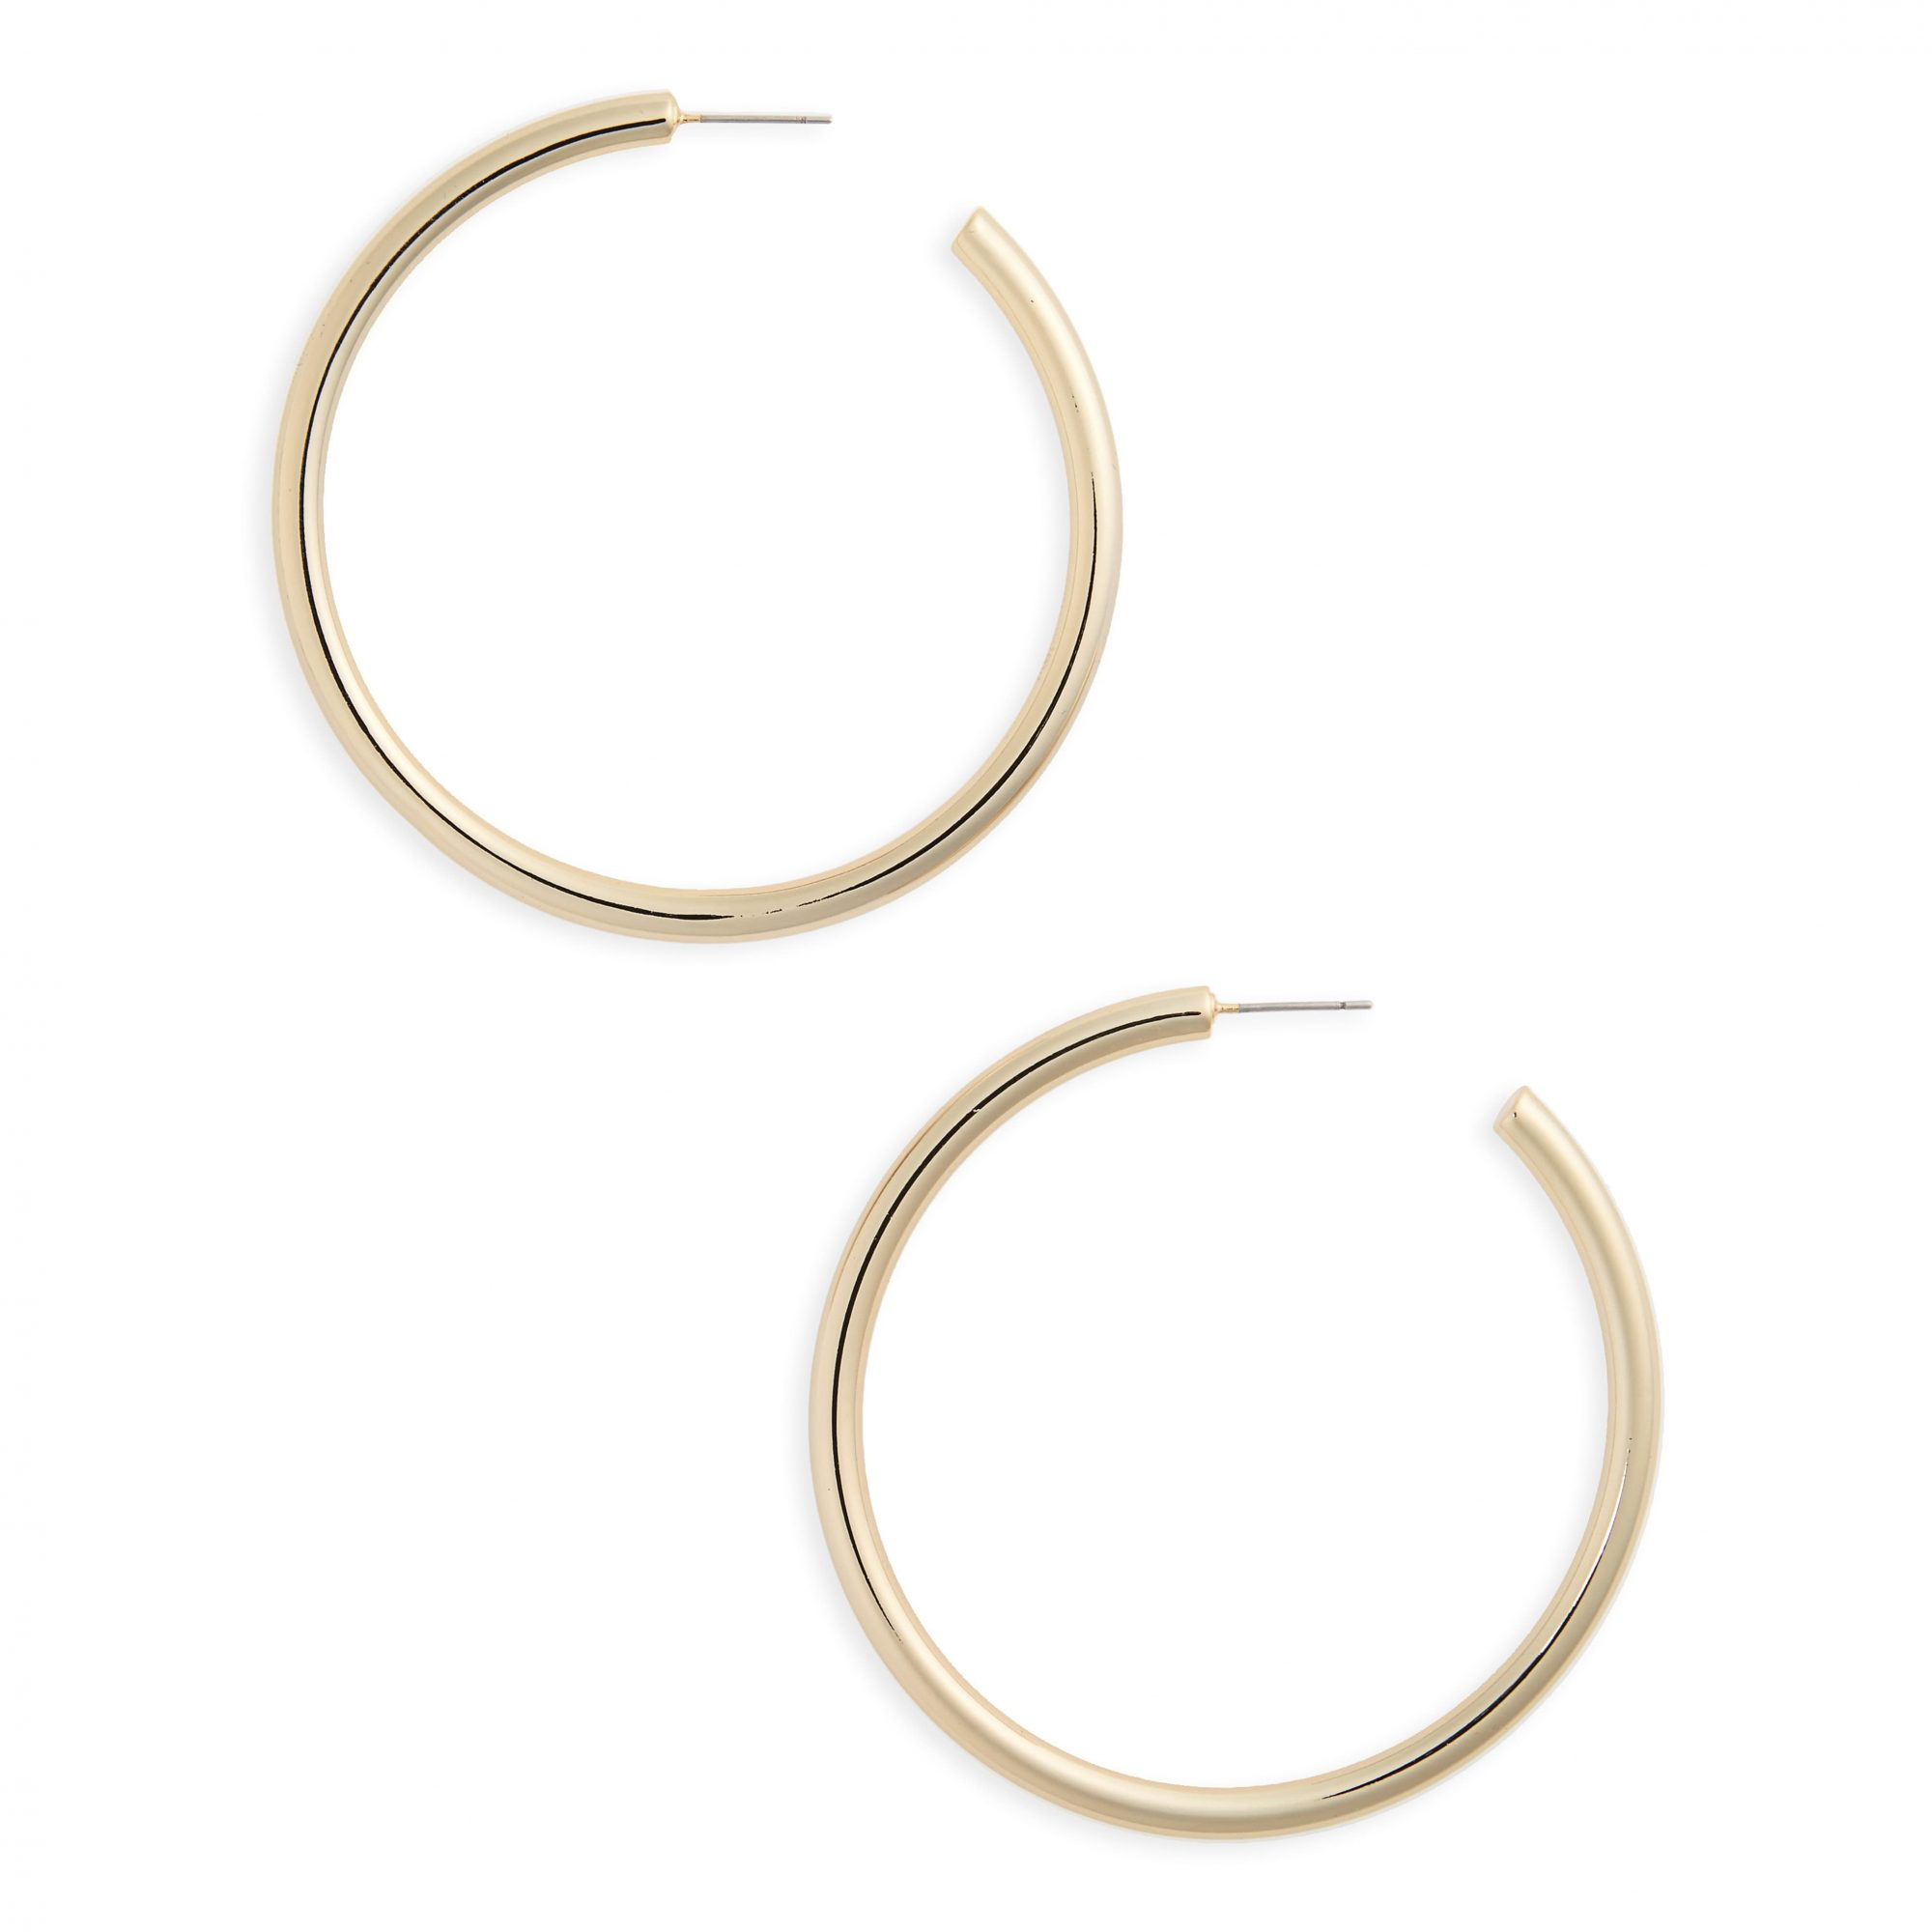 Halogen Large Sleek Tube Hoop Earrings